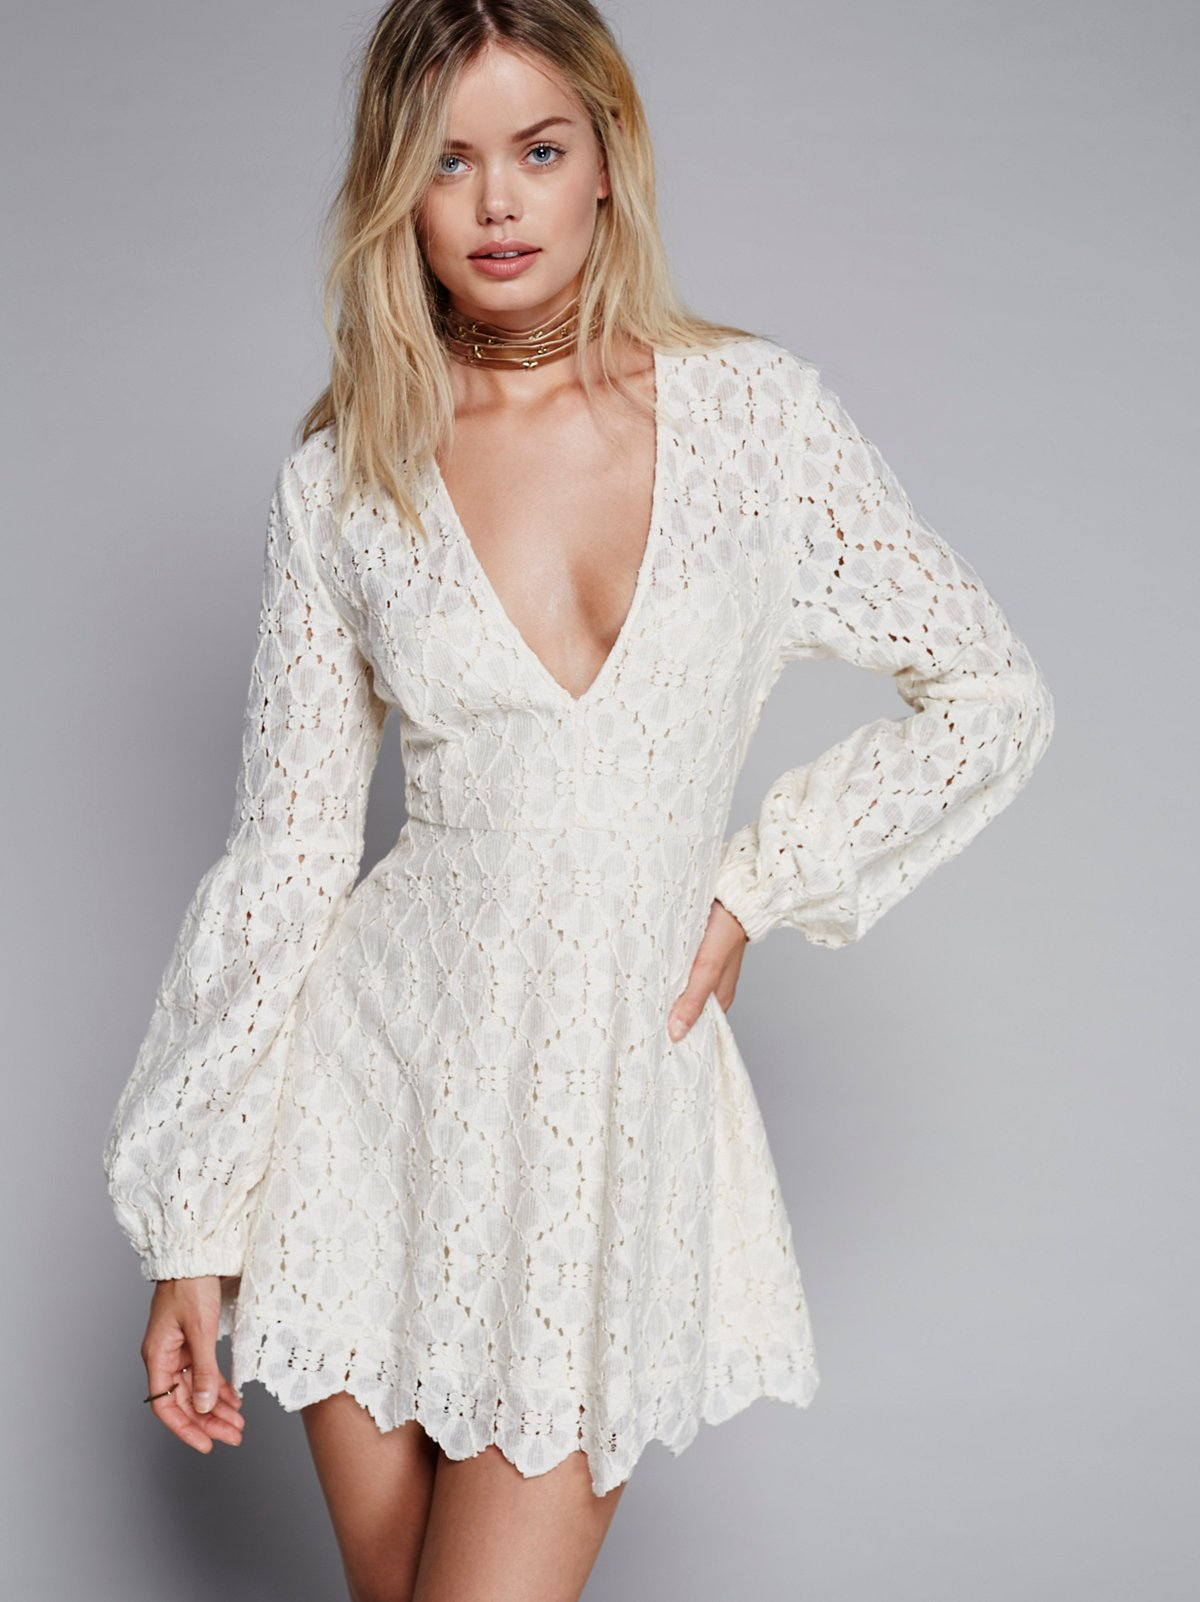 In the Stars Lace Dress